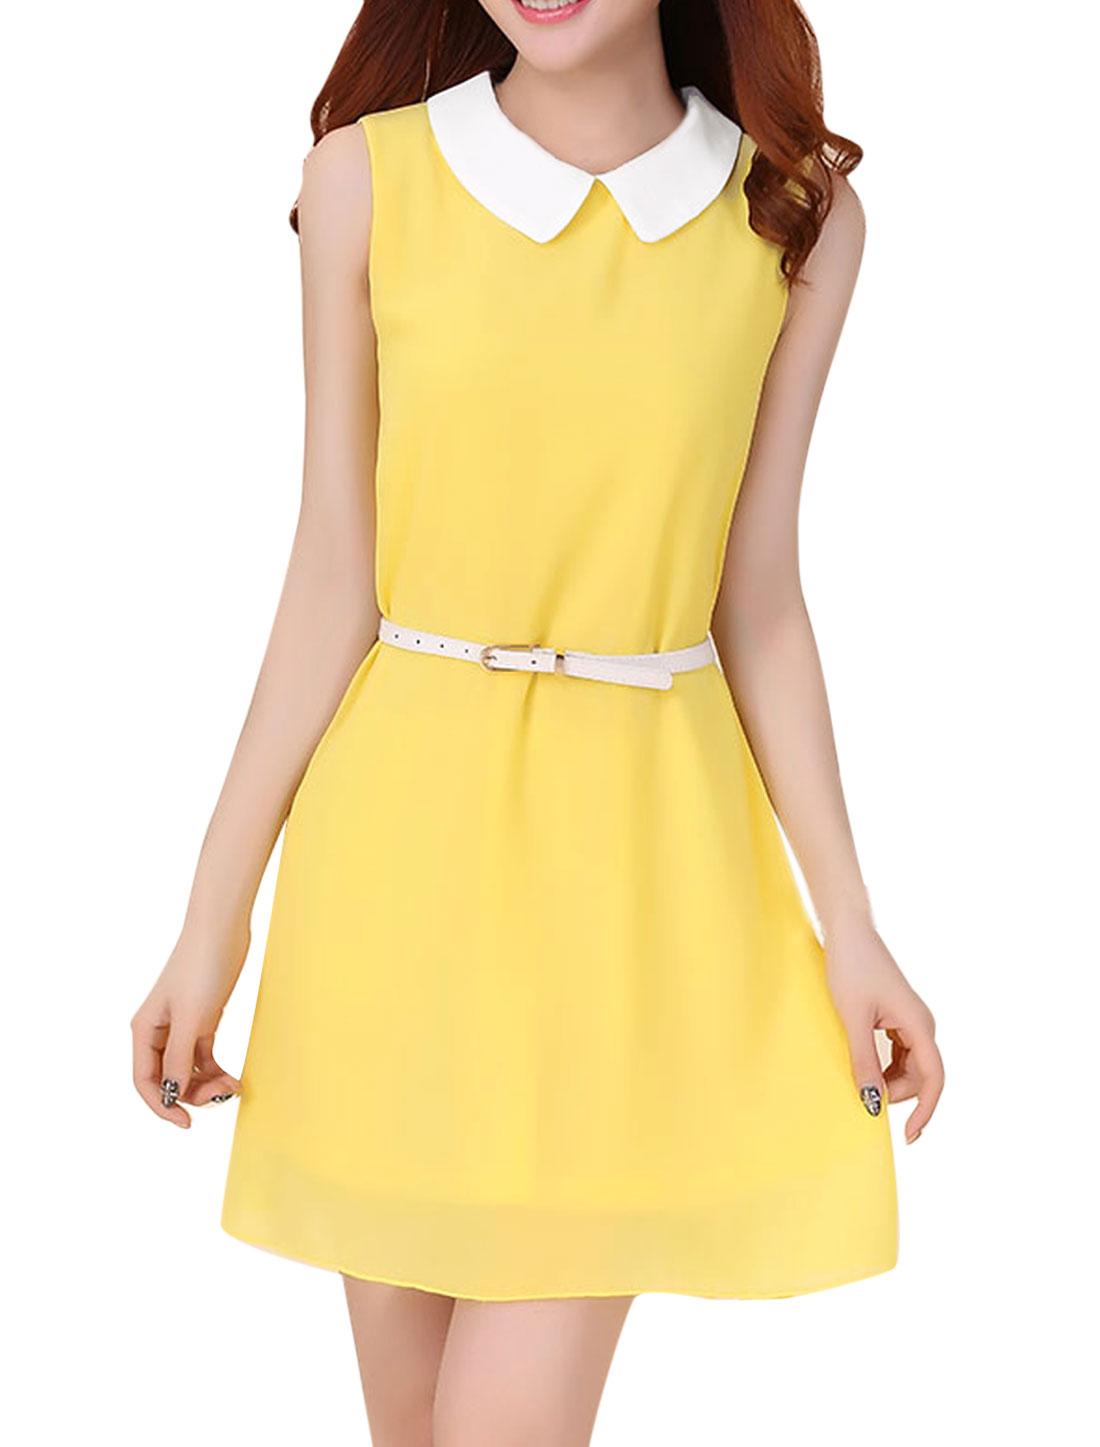 Lady Peter Pan Collar Sleeveless Lining Blouson Dress w Waist Belt Yellow XS